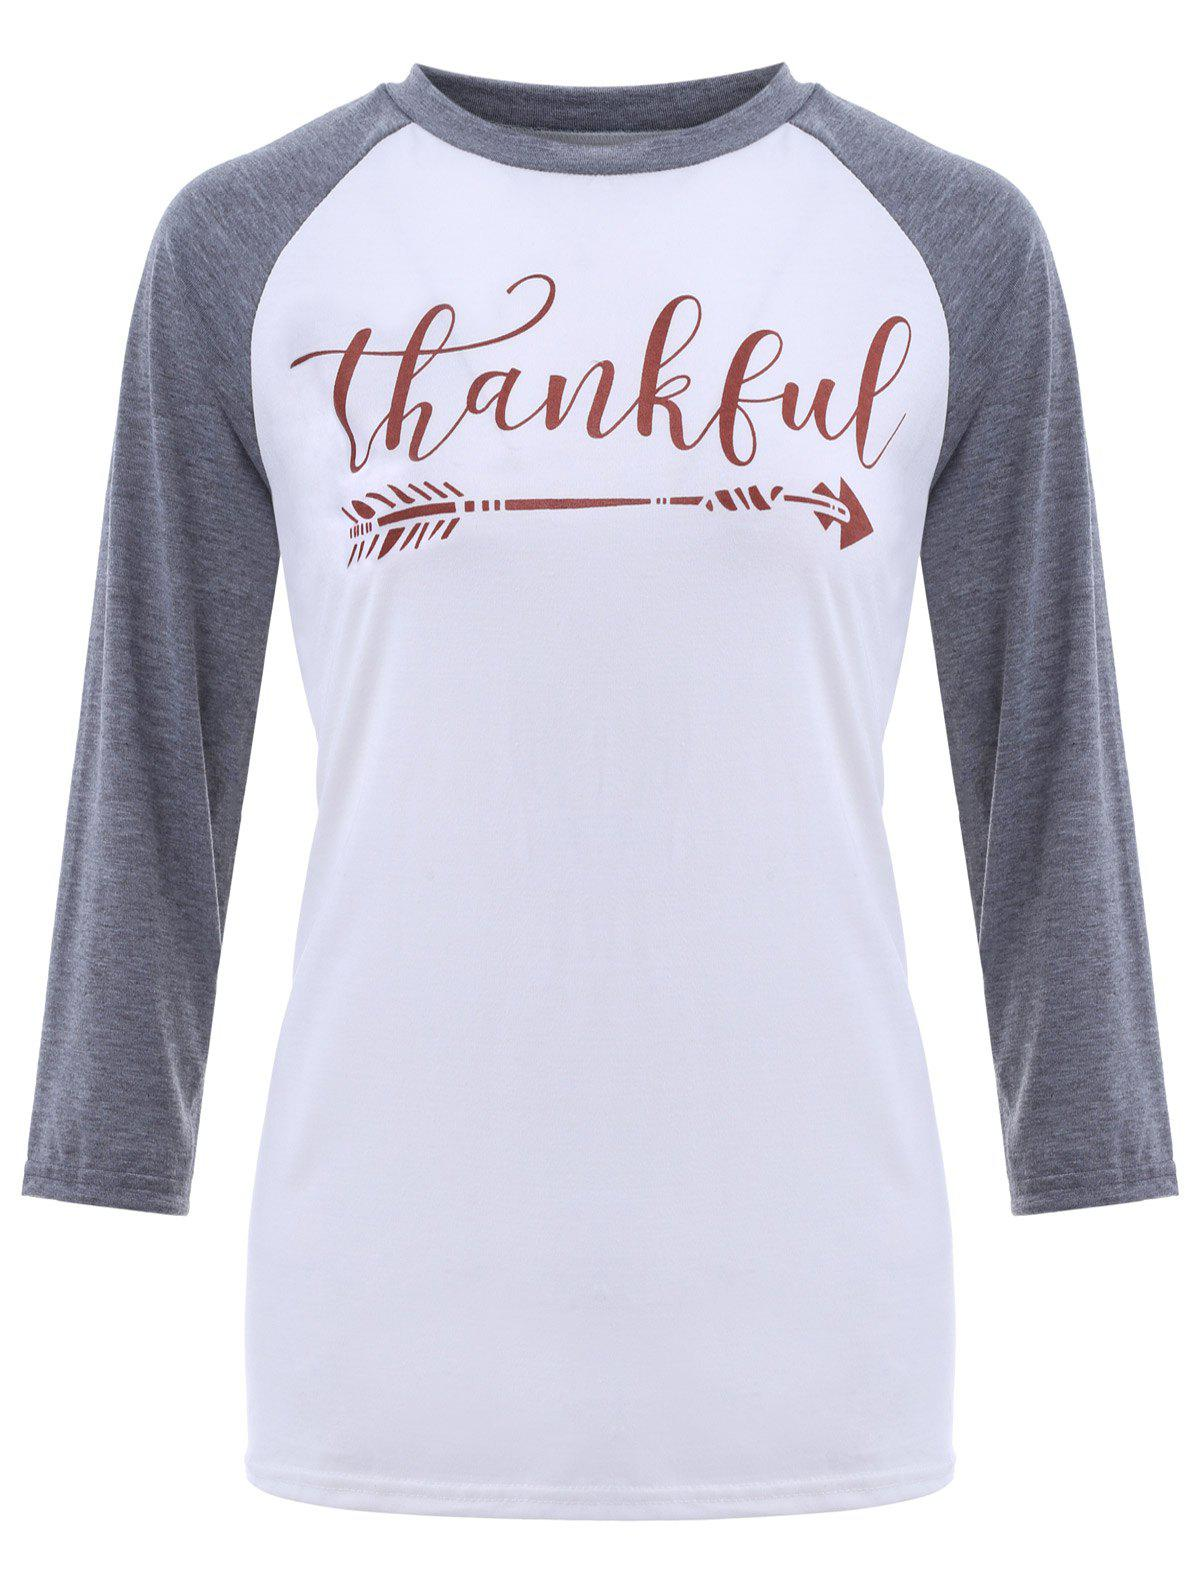 2018 crew neck thankful graphic baseball t shirt grey for T shirt graphics for sale